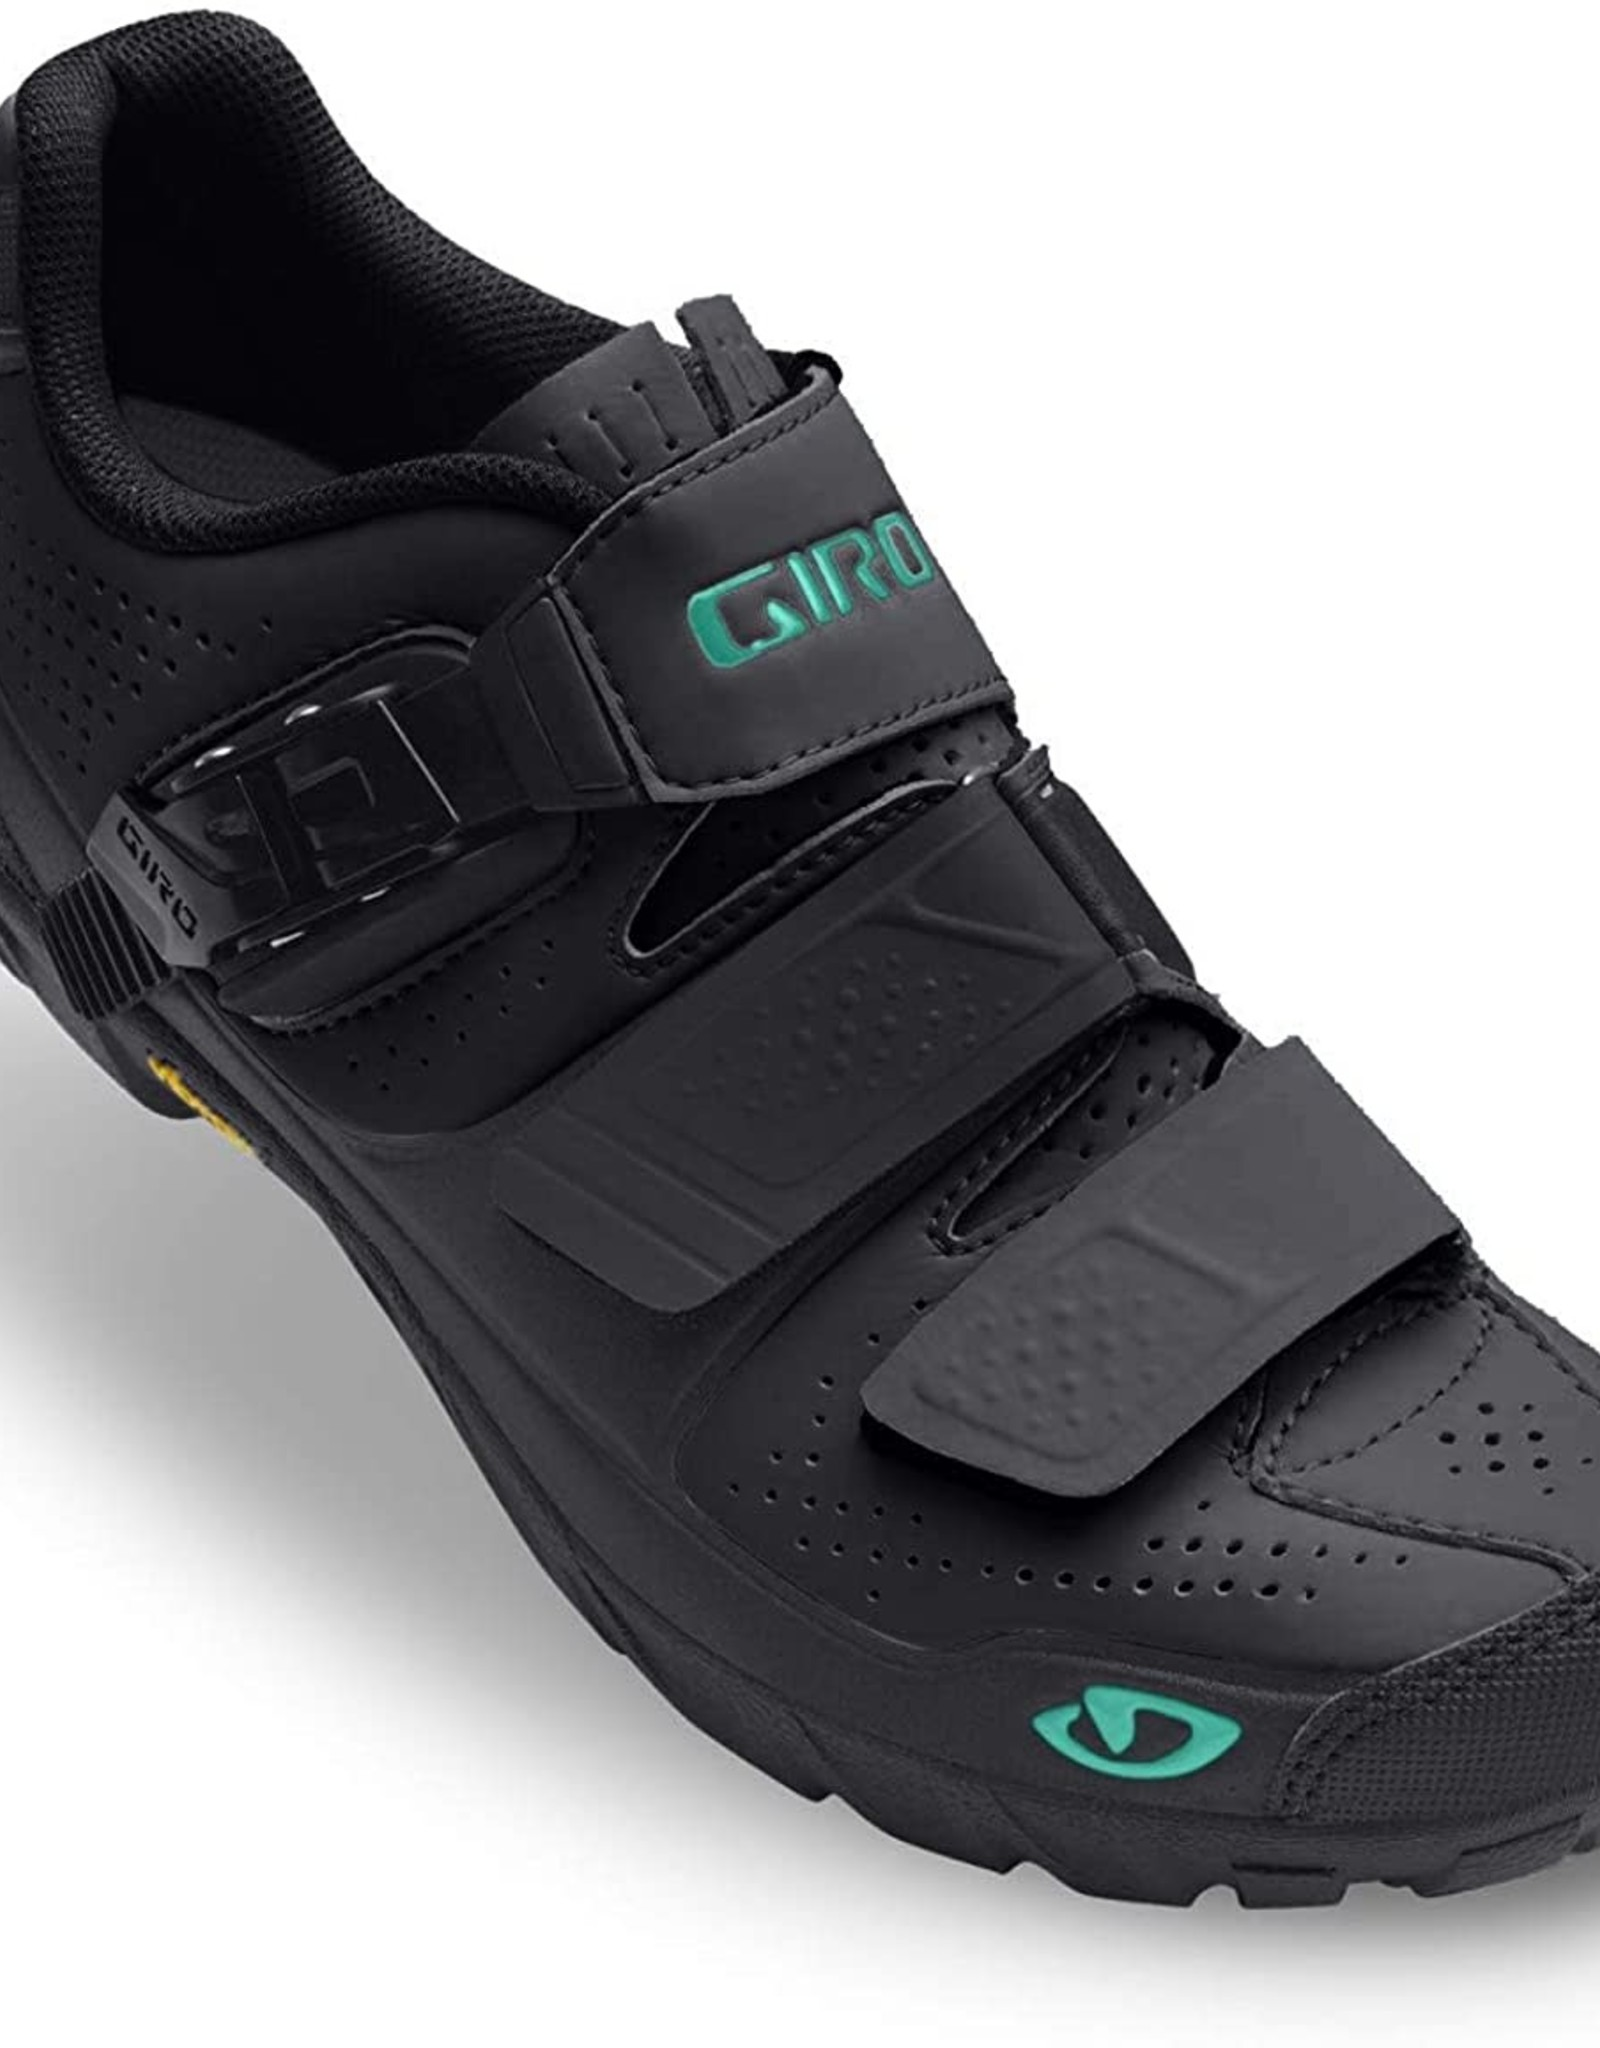 Giro GIRO Bike Shoes TERRADURA